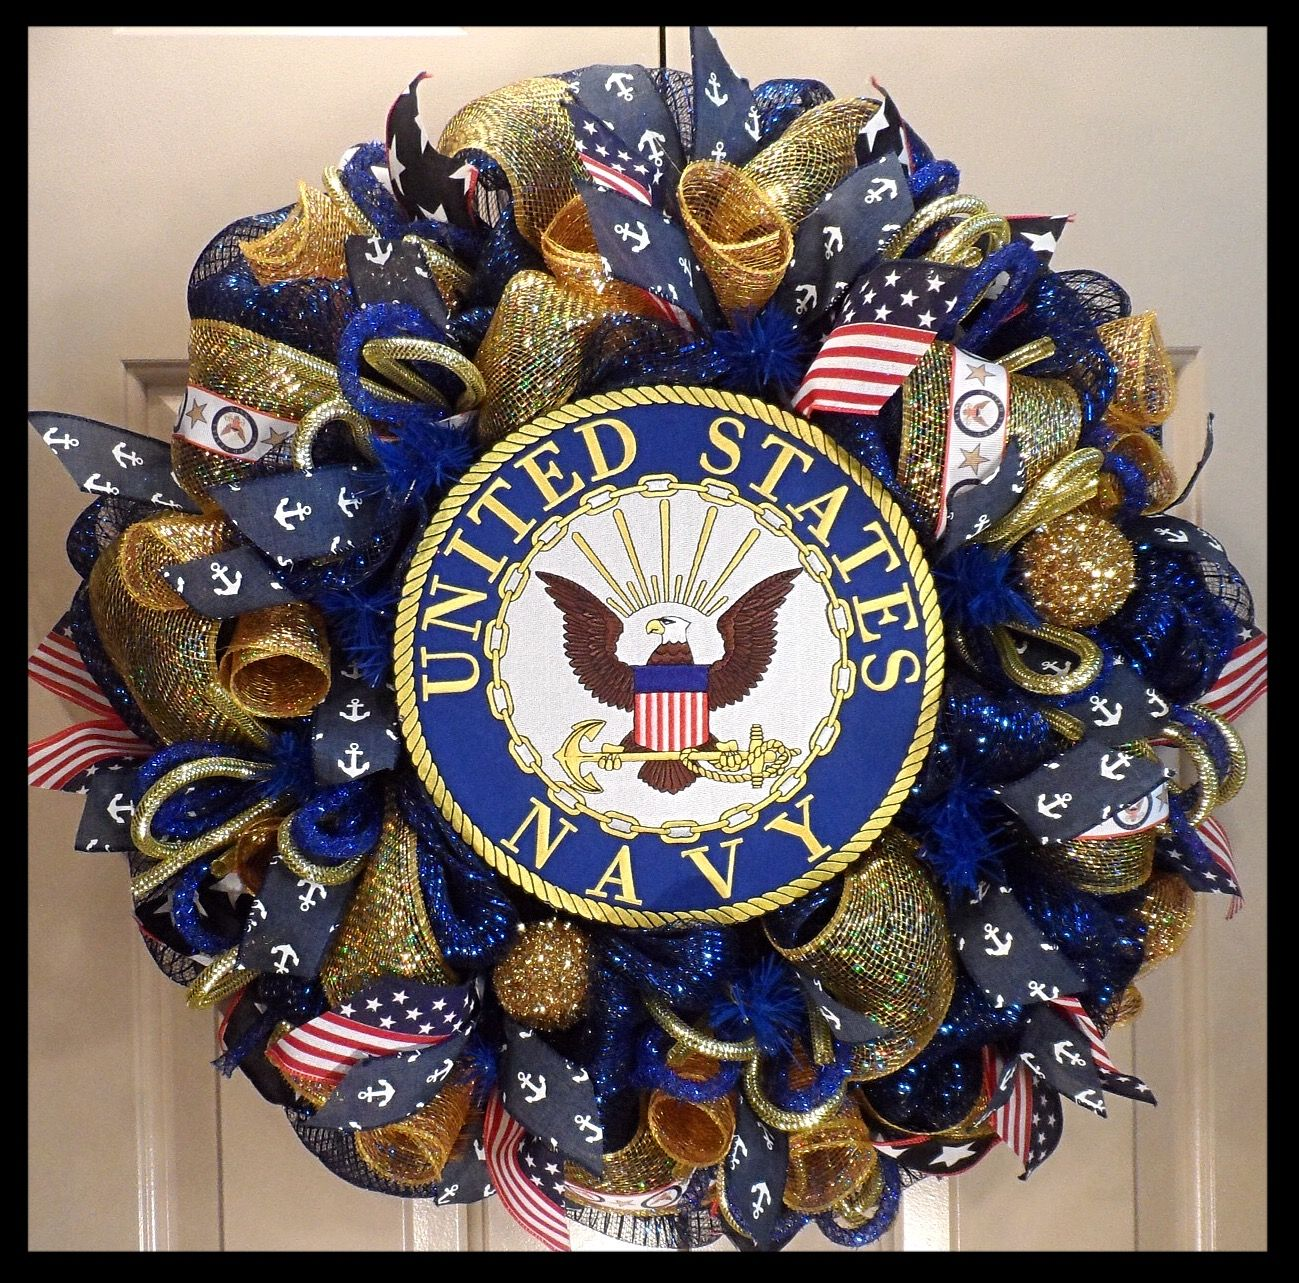 Military Ball Decorations: United States Navy Wreath From Www.facebook.com